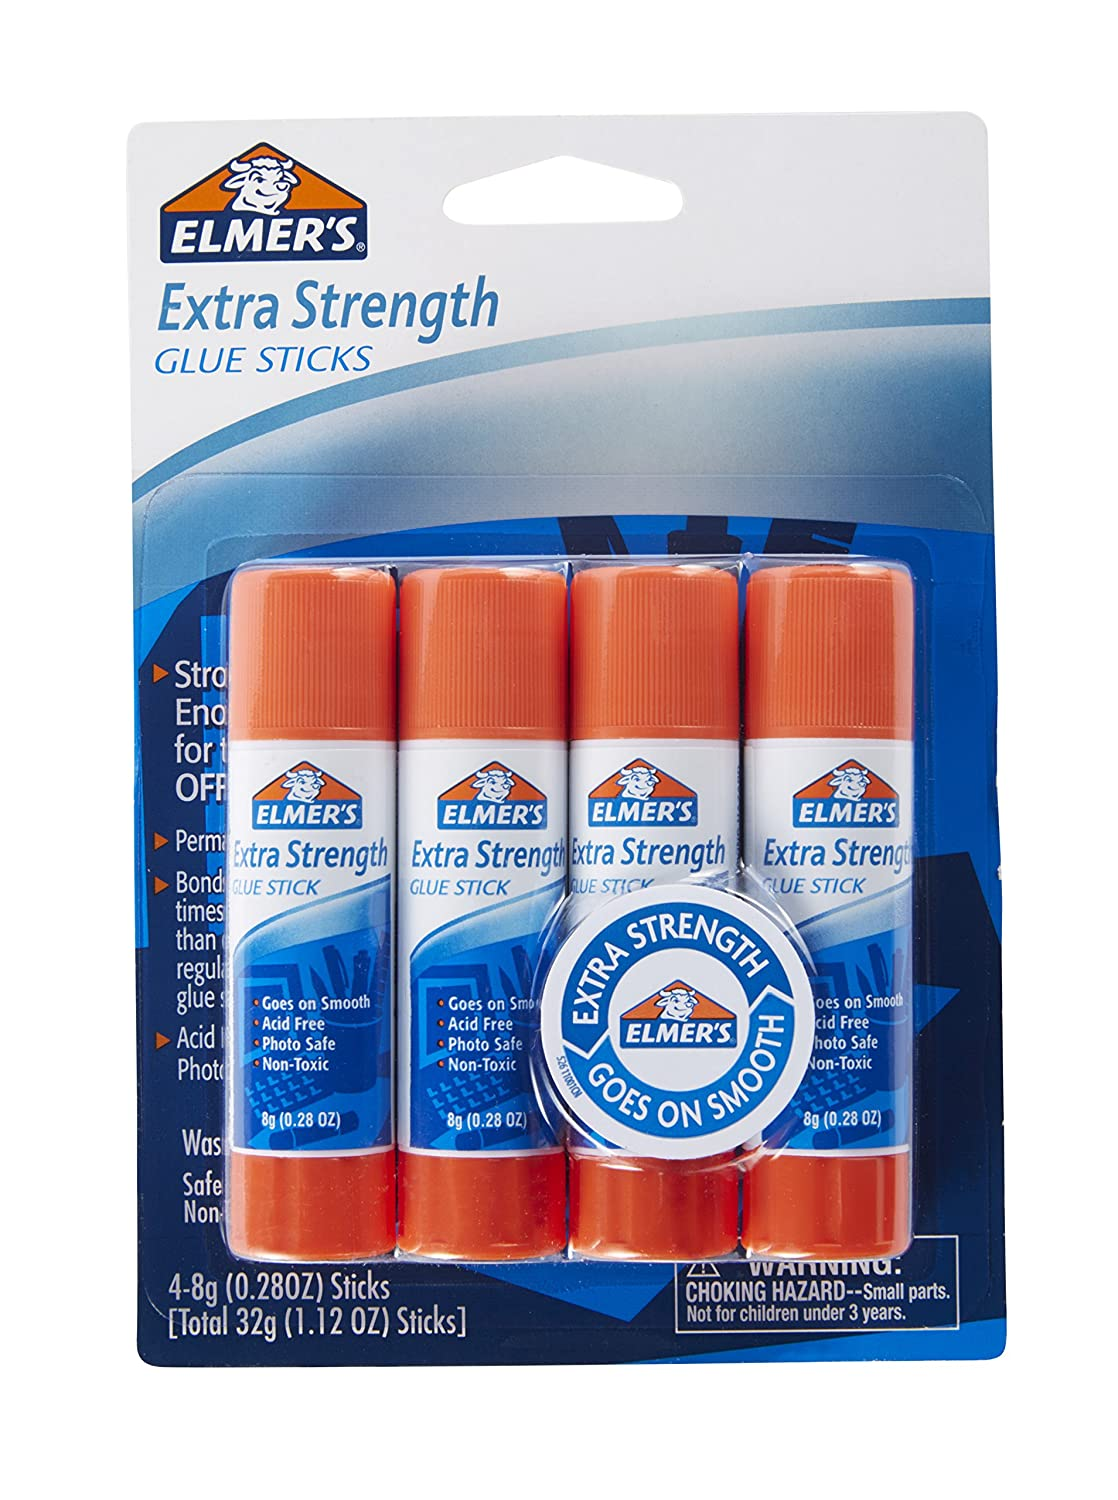 Elmer's Extra Strength Office Glue Sticks, 0.28 Ounces Each, White, 24 Sticks per Pack (E554) Elmer' s Products Inc